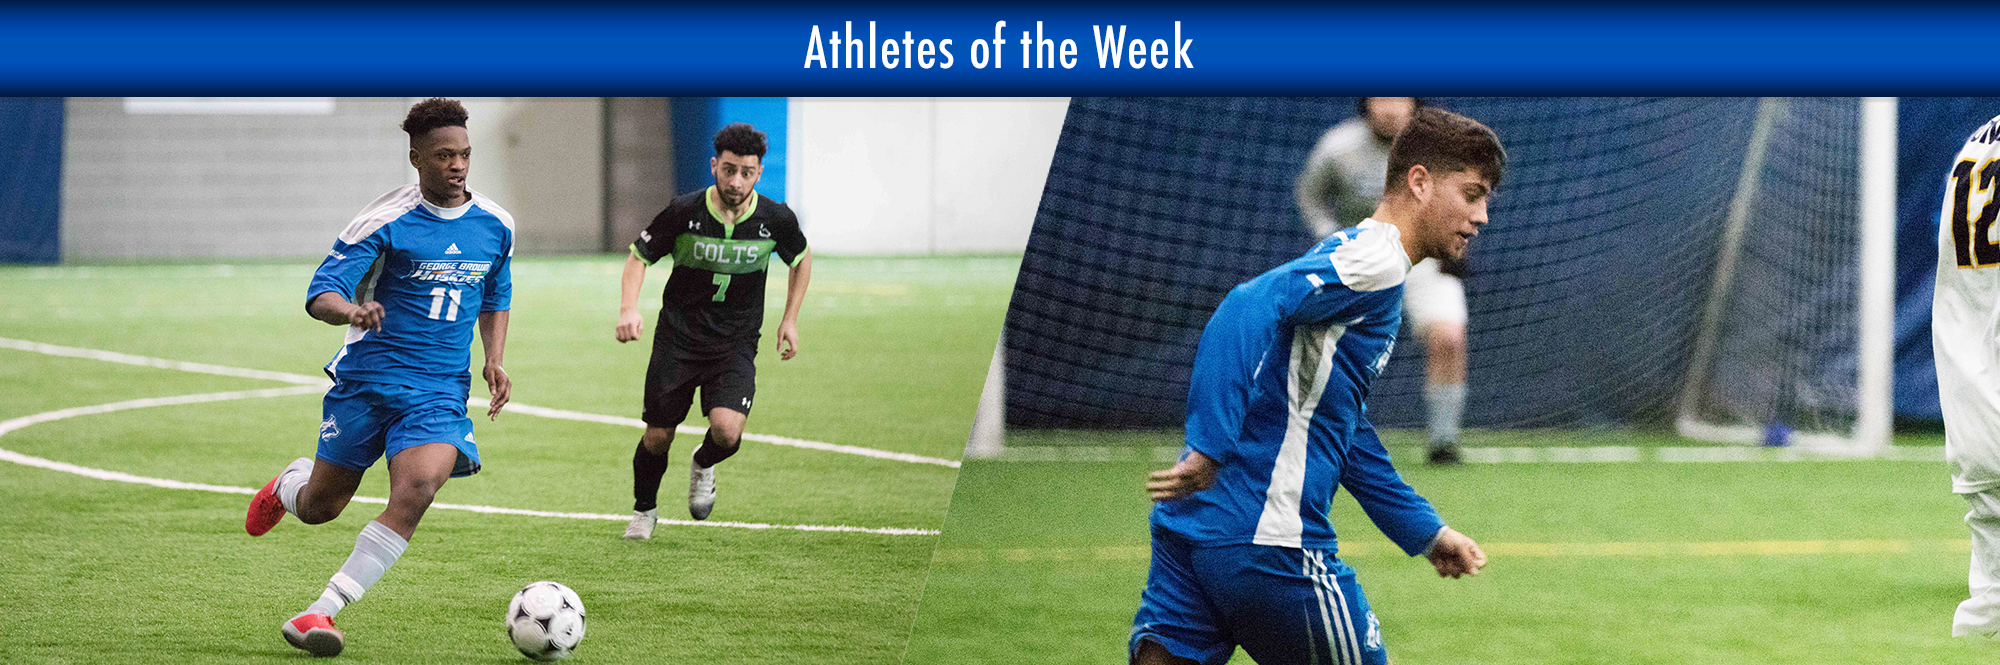 SHAQUILLE AGARD, MATHEW DA SILVA NAMED HUSKIES ATHLETES OF THE WEEK